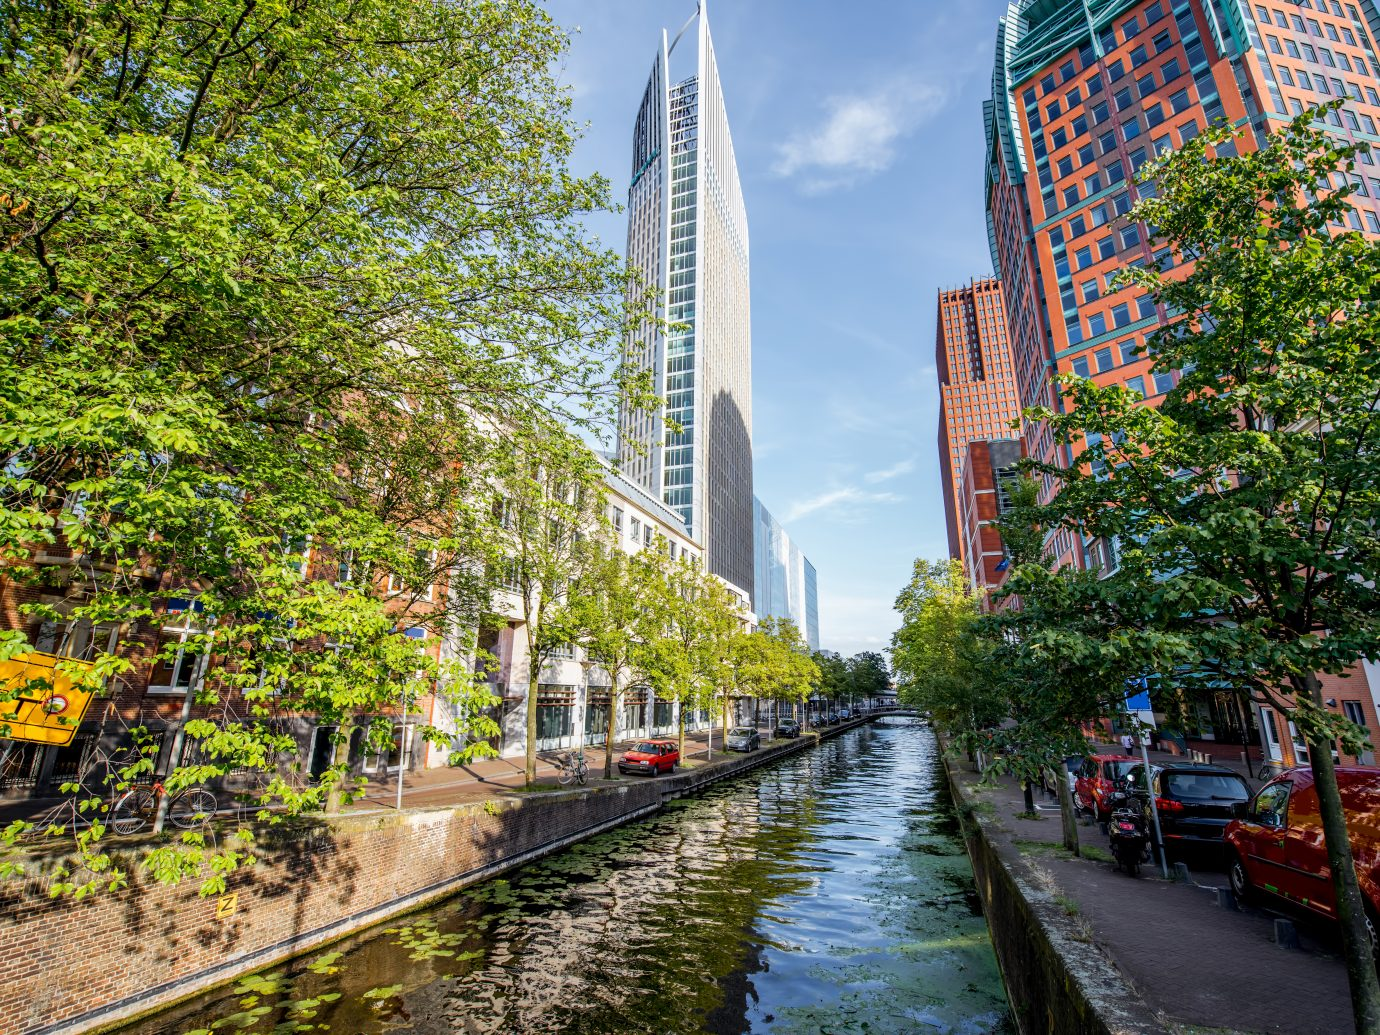 View on the water channel and beautiful skyscrapers in Haag city, Netherlands